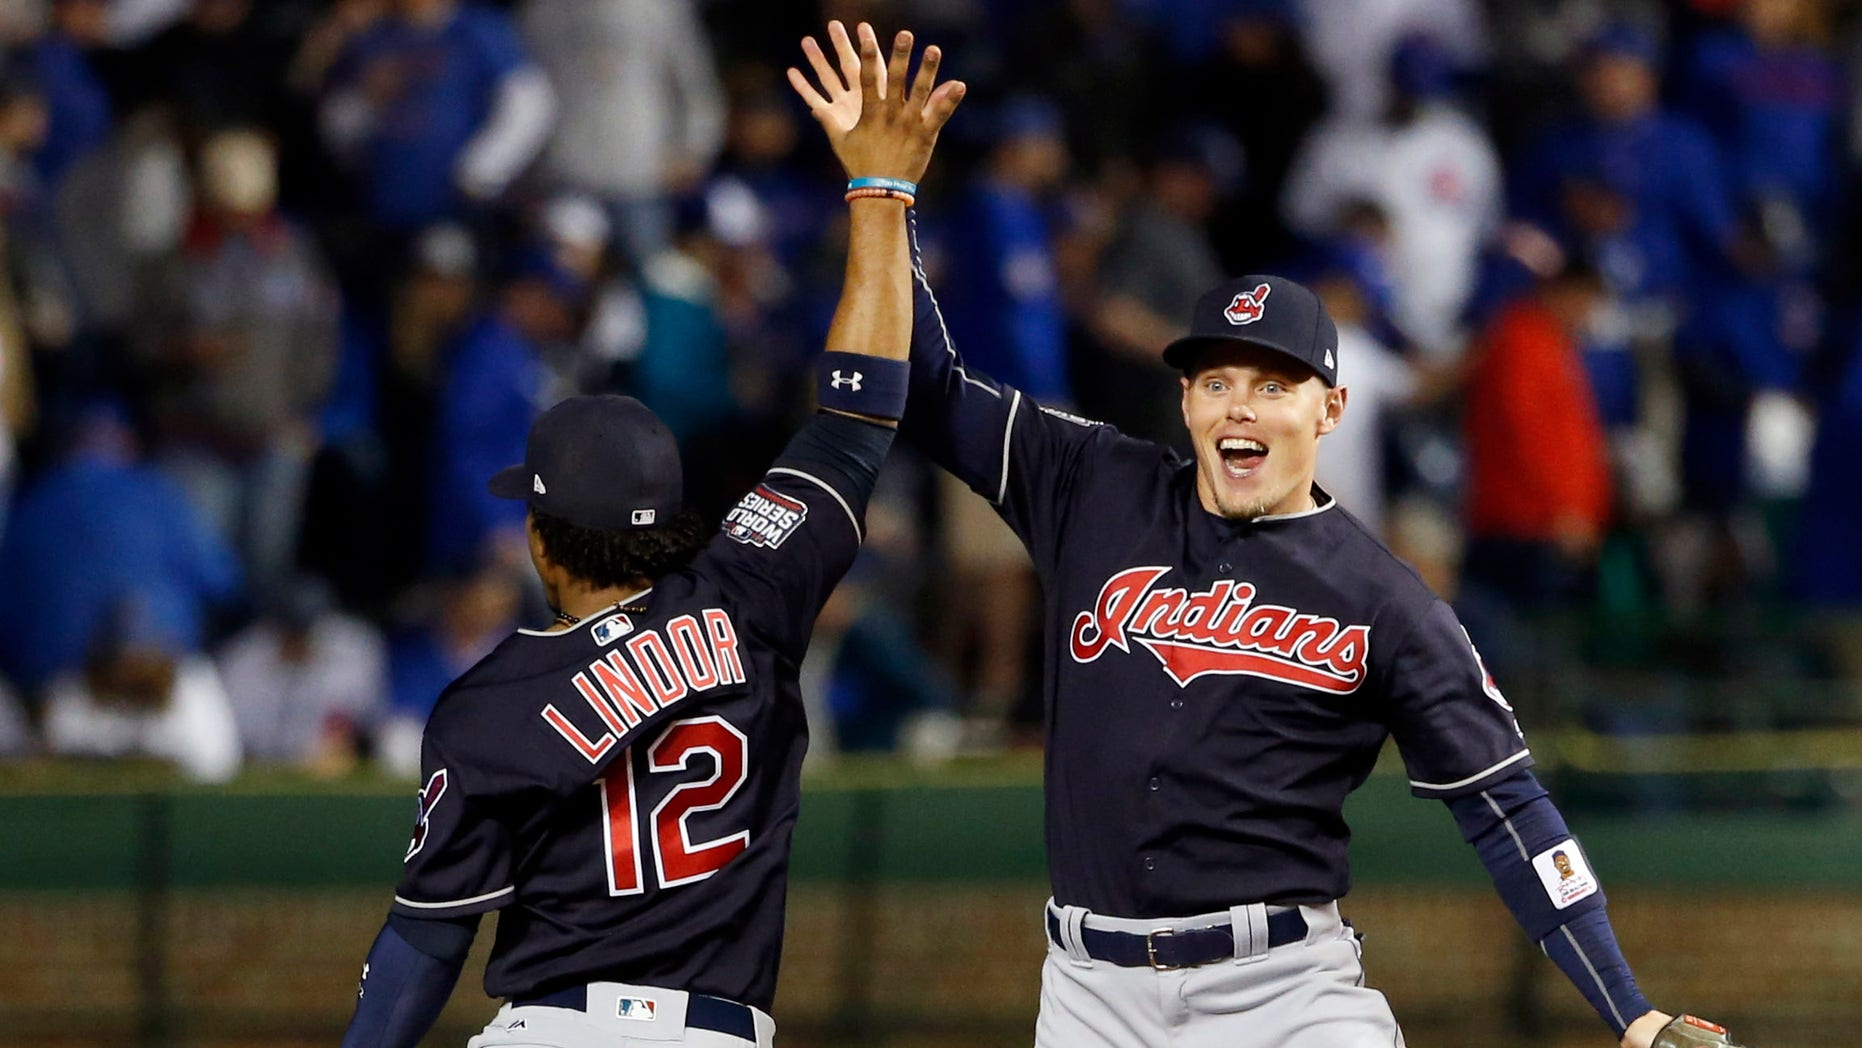 Cleveland Indians' Brandon Guyer, right, celebrates with Francisco Lindor (12) after Game 4 of the Major League Baseball World Series against the Chicago Cubs, Saturday, Oct. 29, 2016, in Chicago. The Indians won 7-2 to take a 3-1 lead in the series. (AP Photo/Nam Y. Huh)